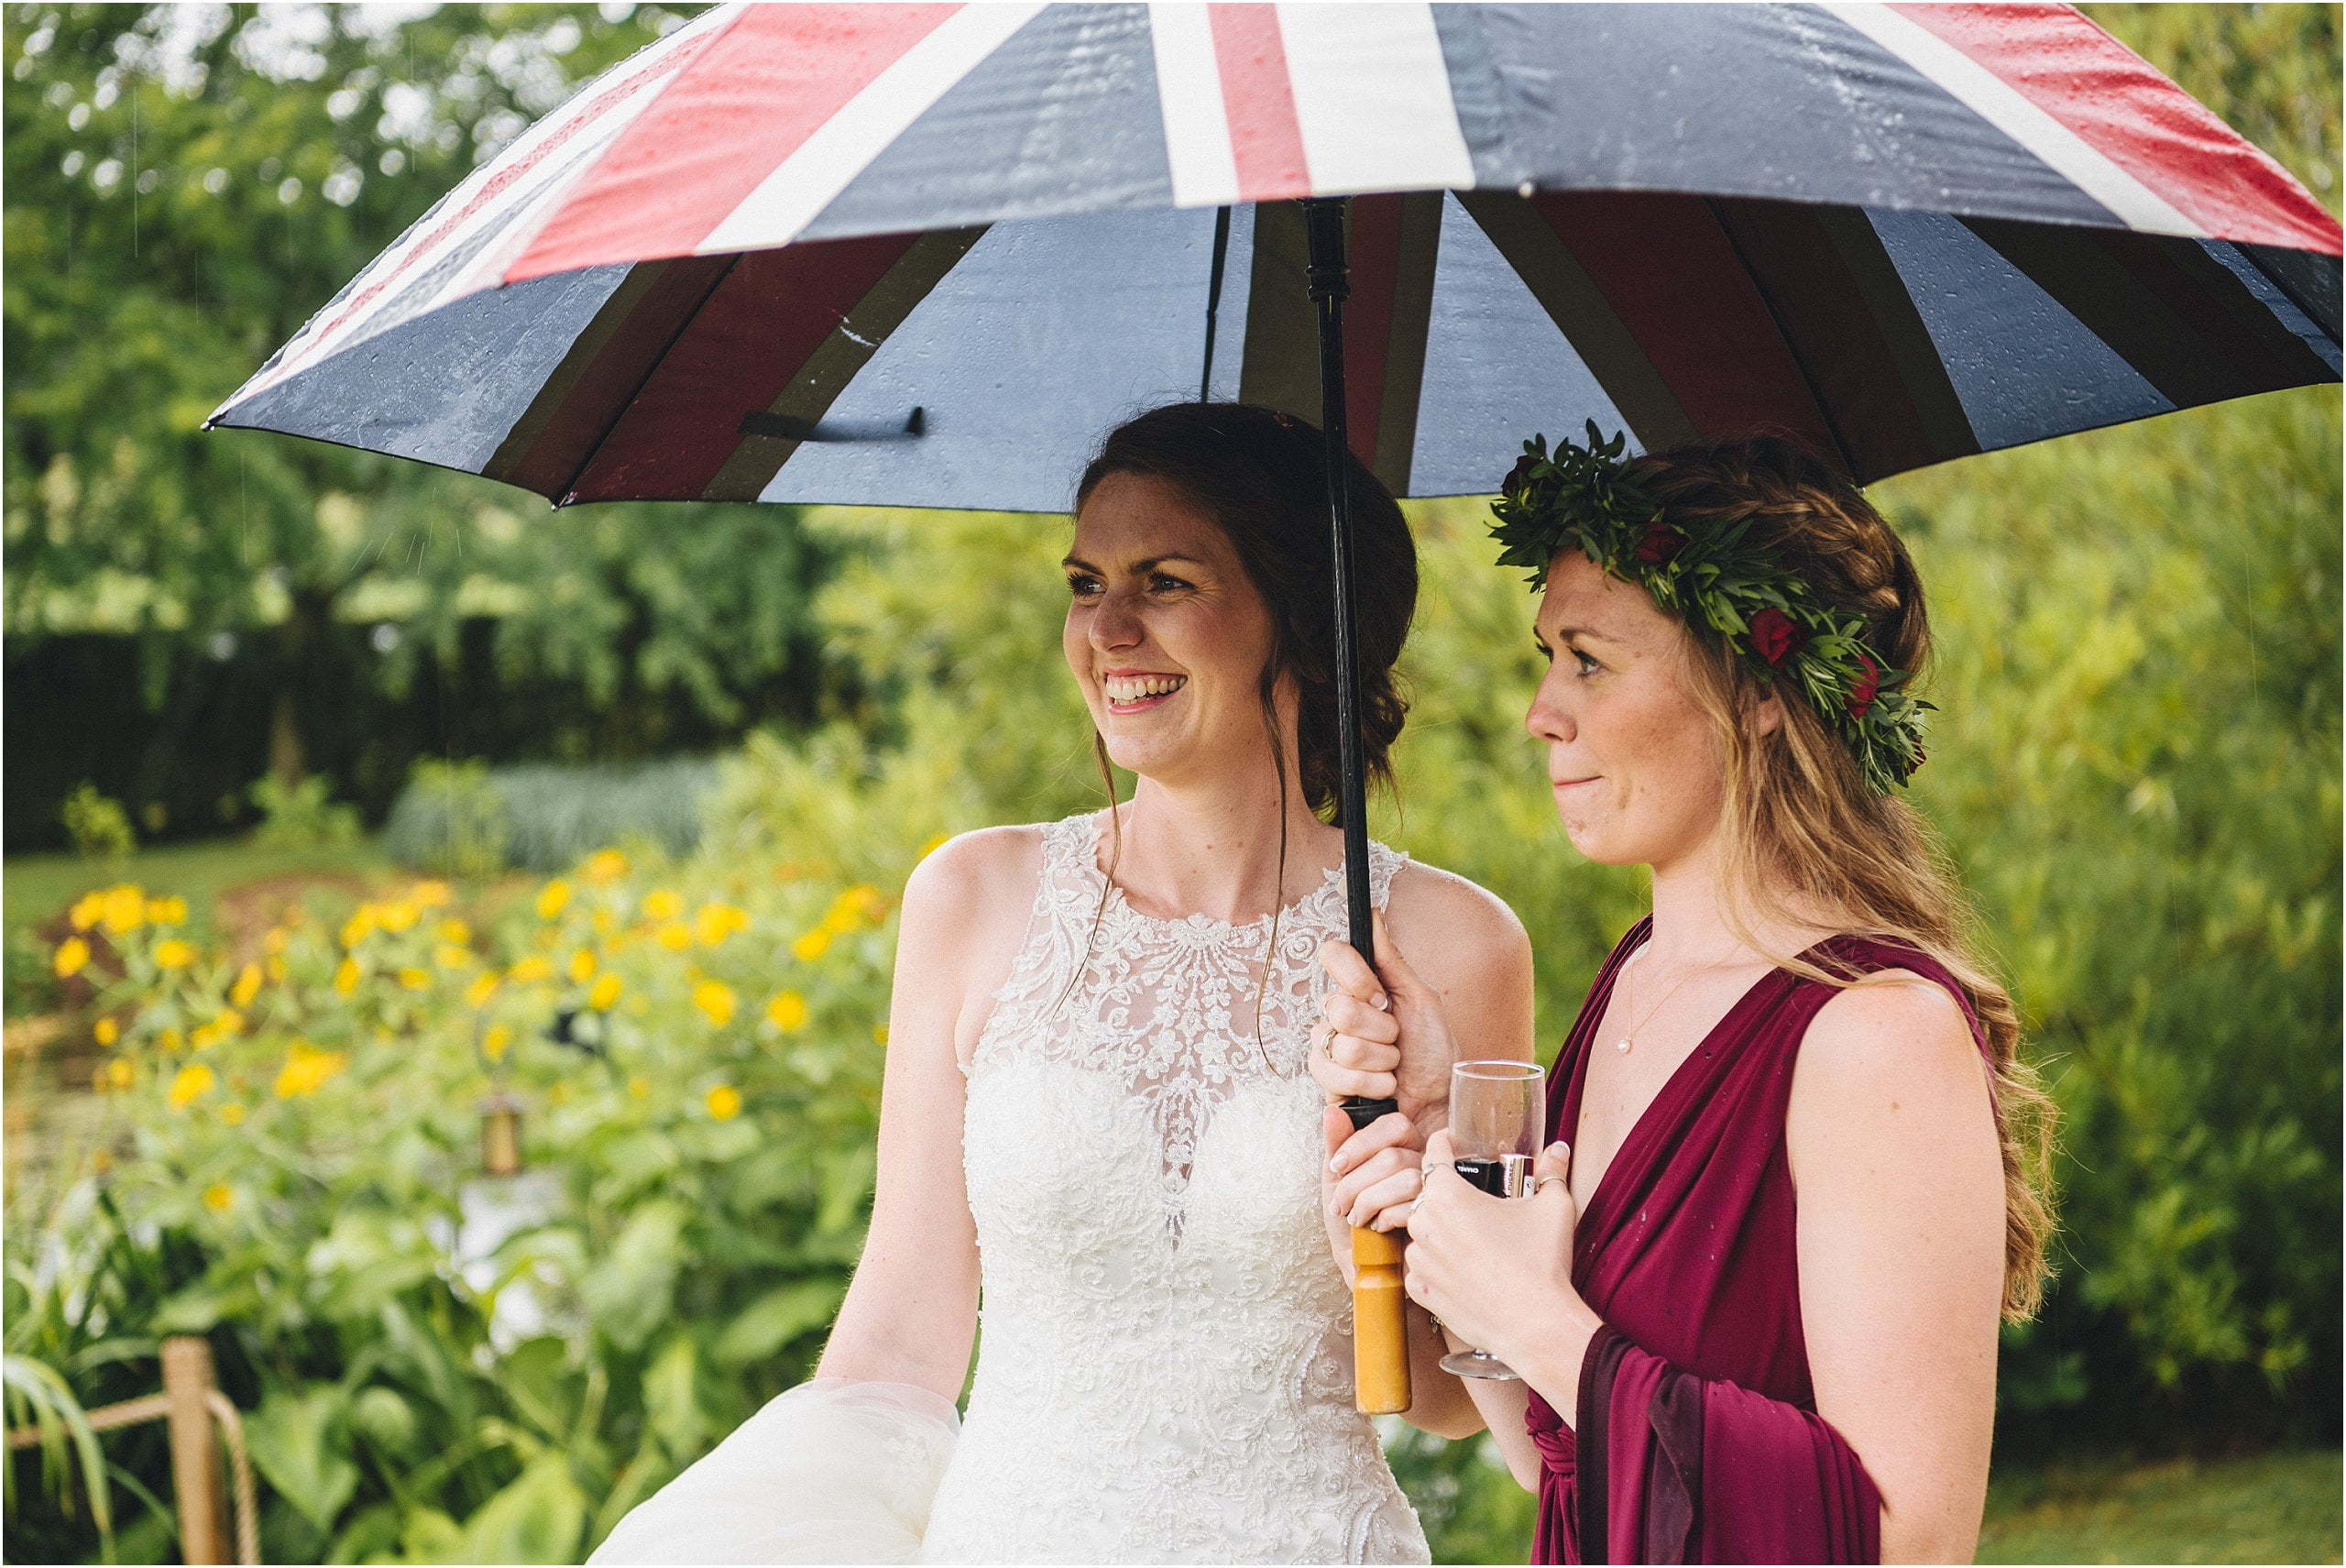 rainy wedding day photography